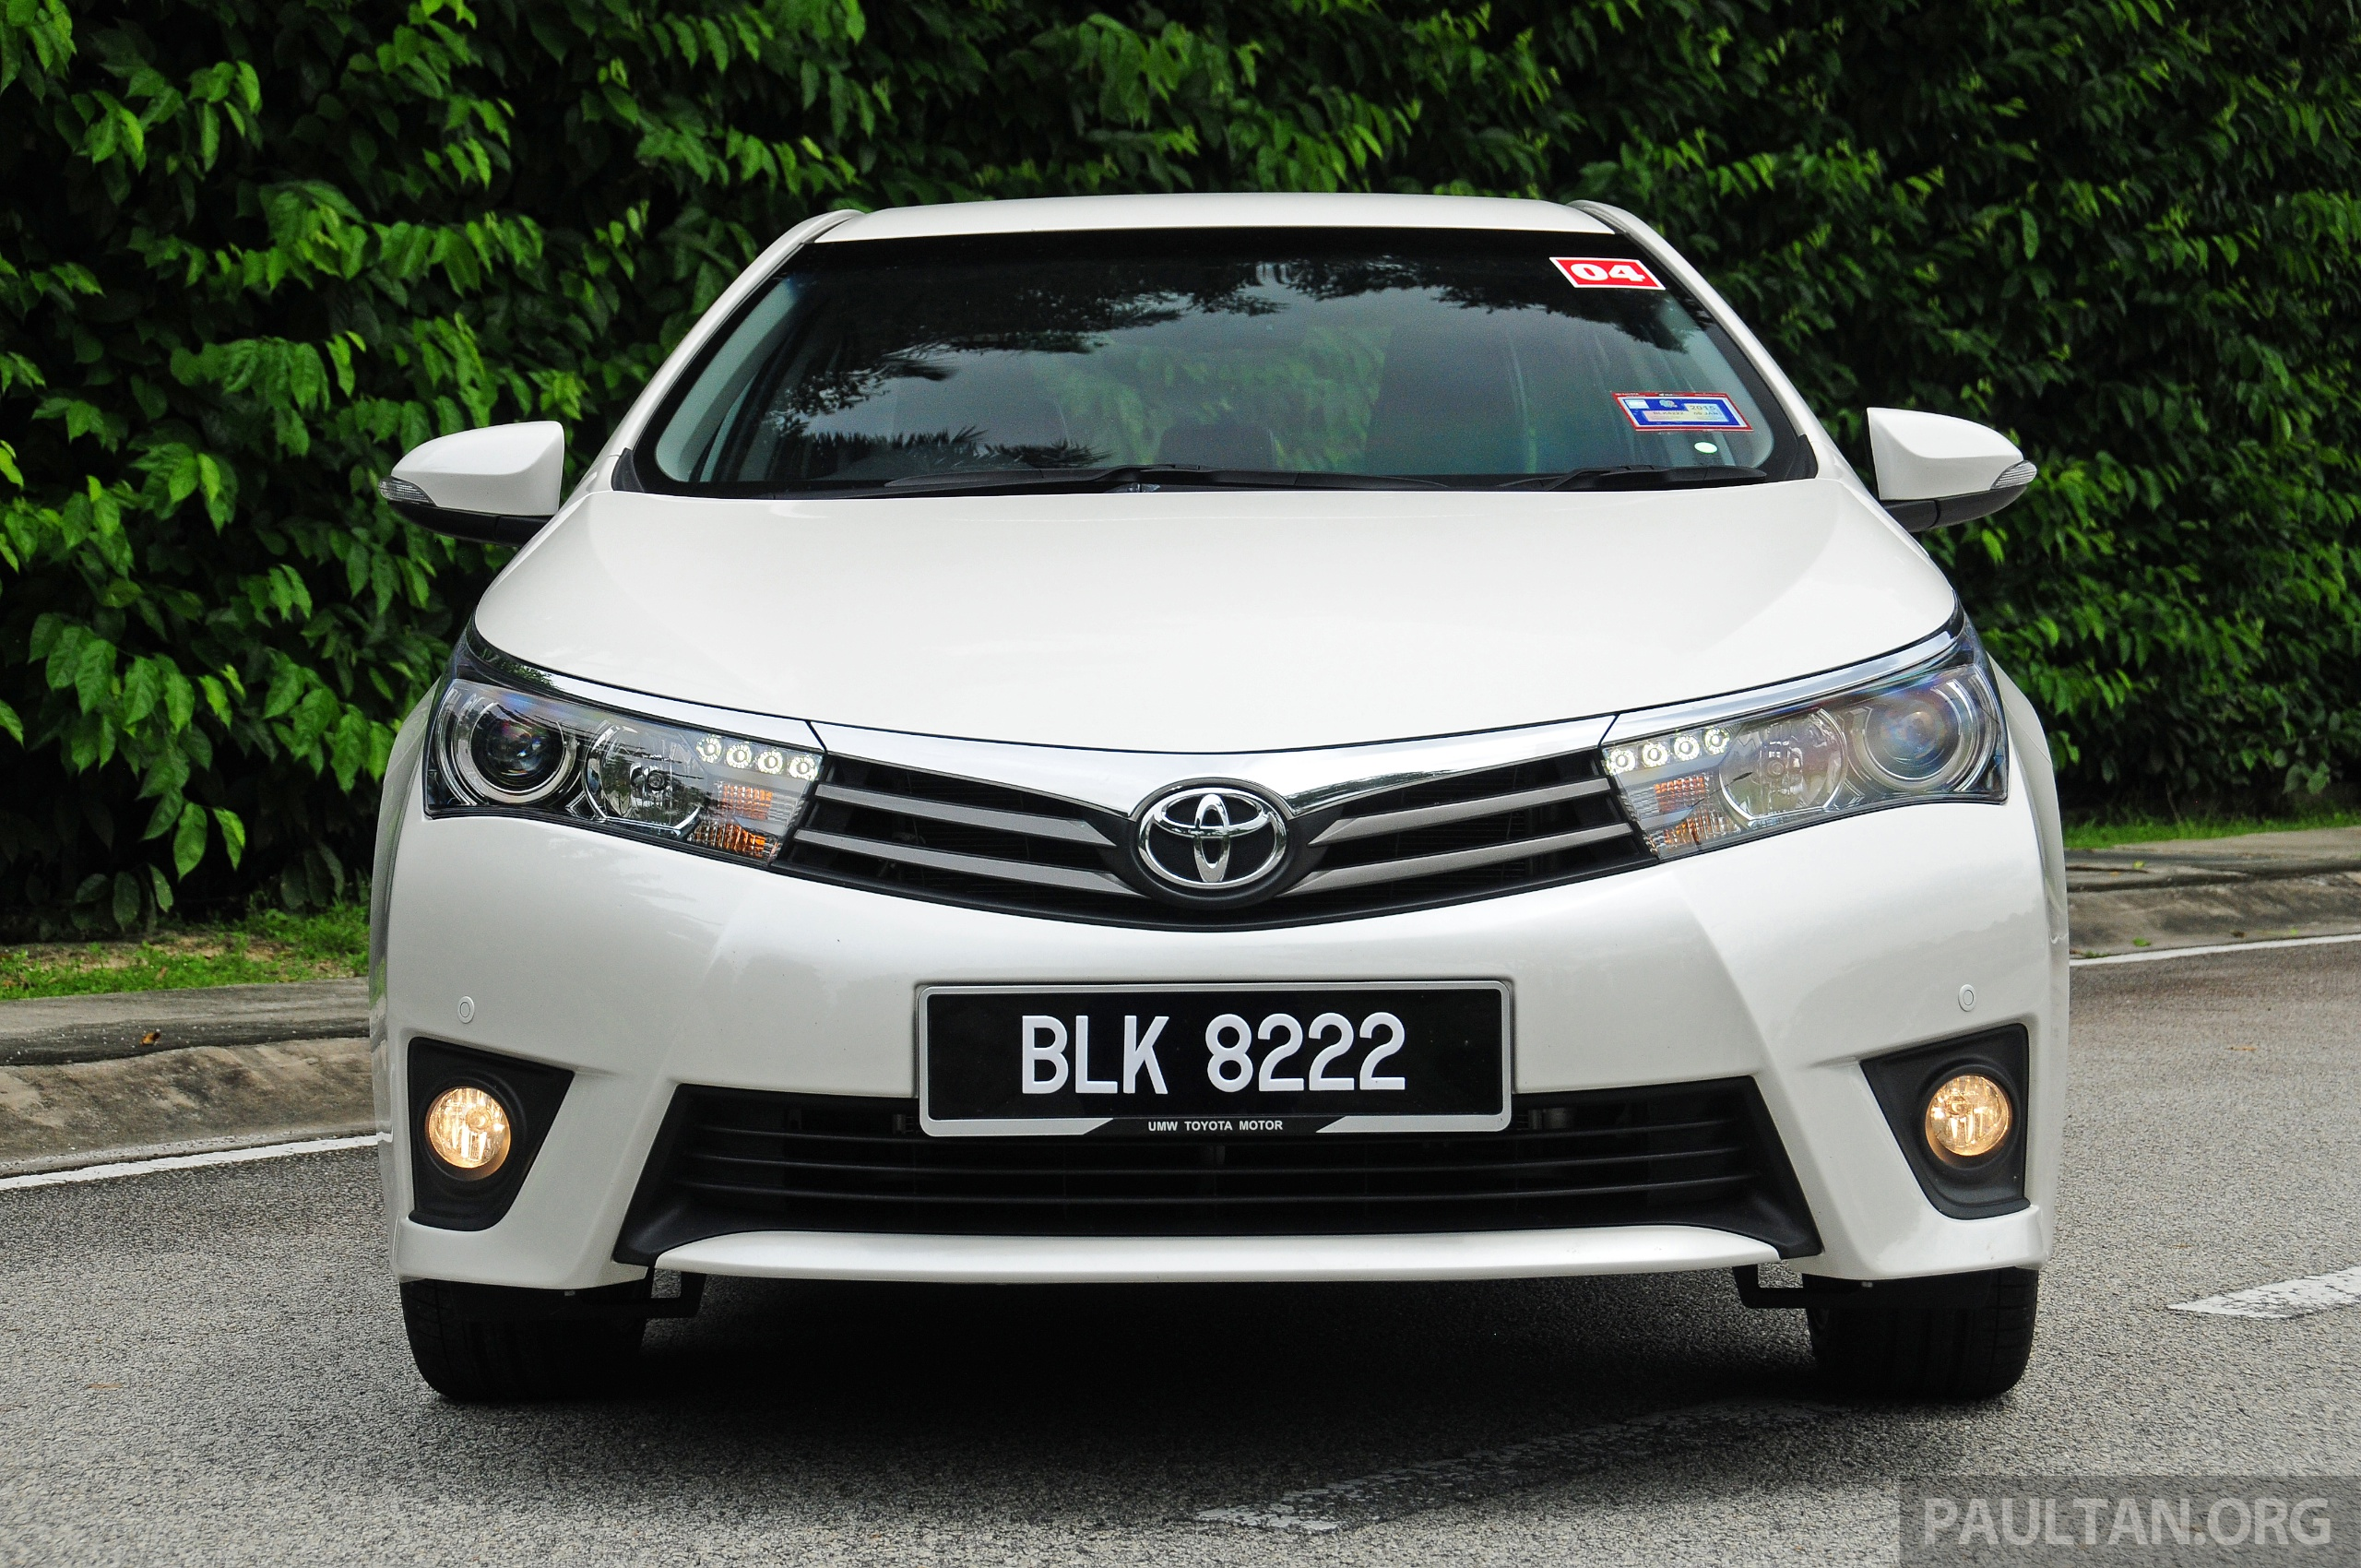 2014 Toyota Altis Philippines | Star Travel International And Domestic Guides For Beach and ...